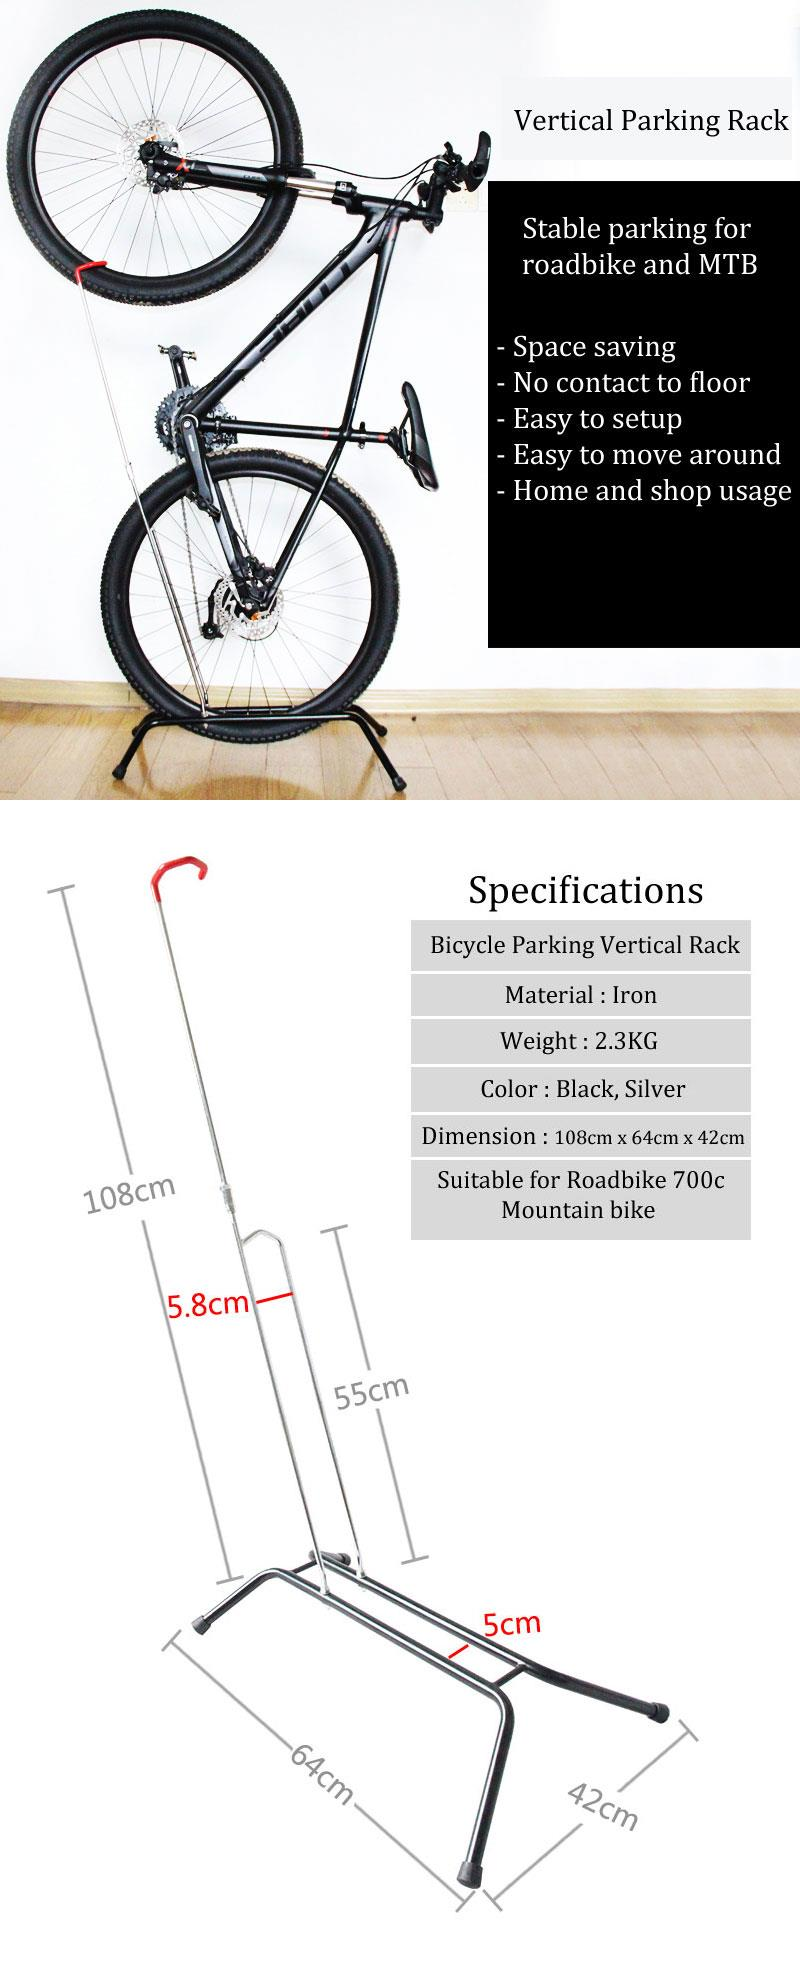 VERTICAL STAND FOR BICYCLE ROADBIKE MTB